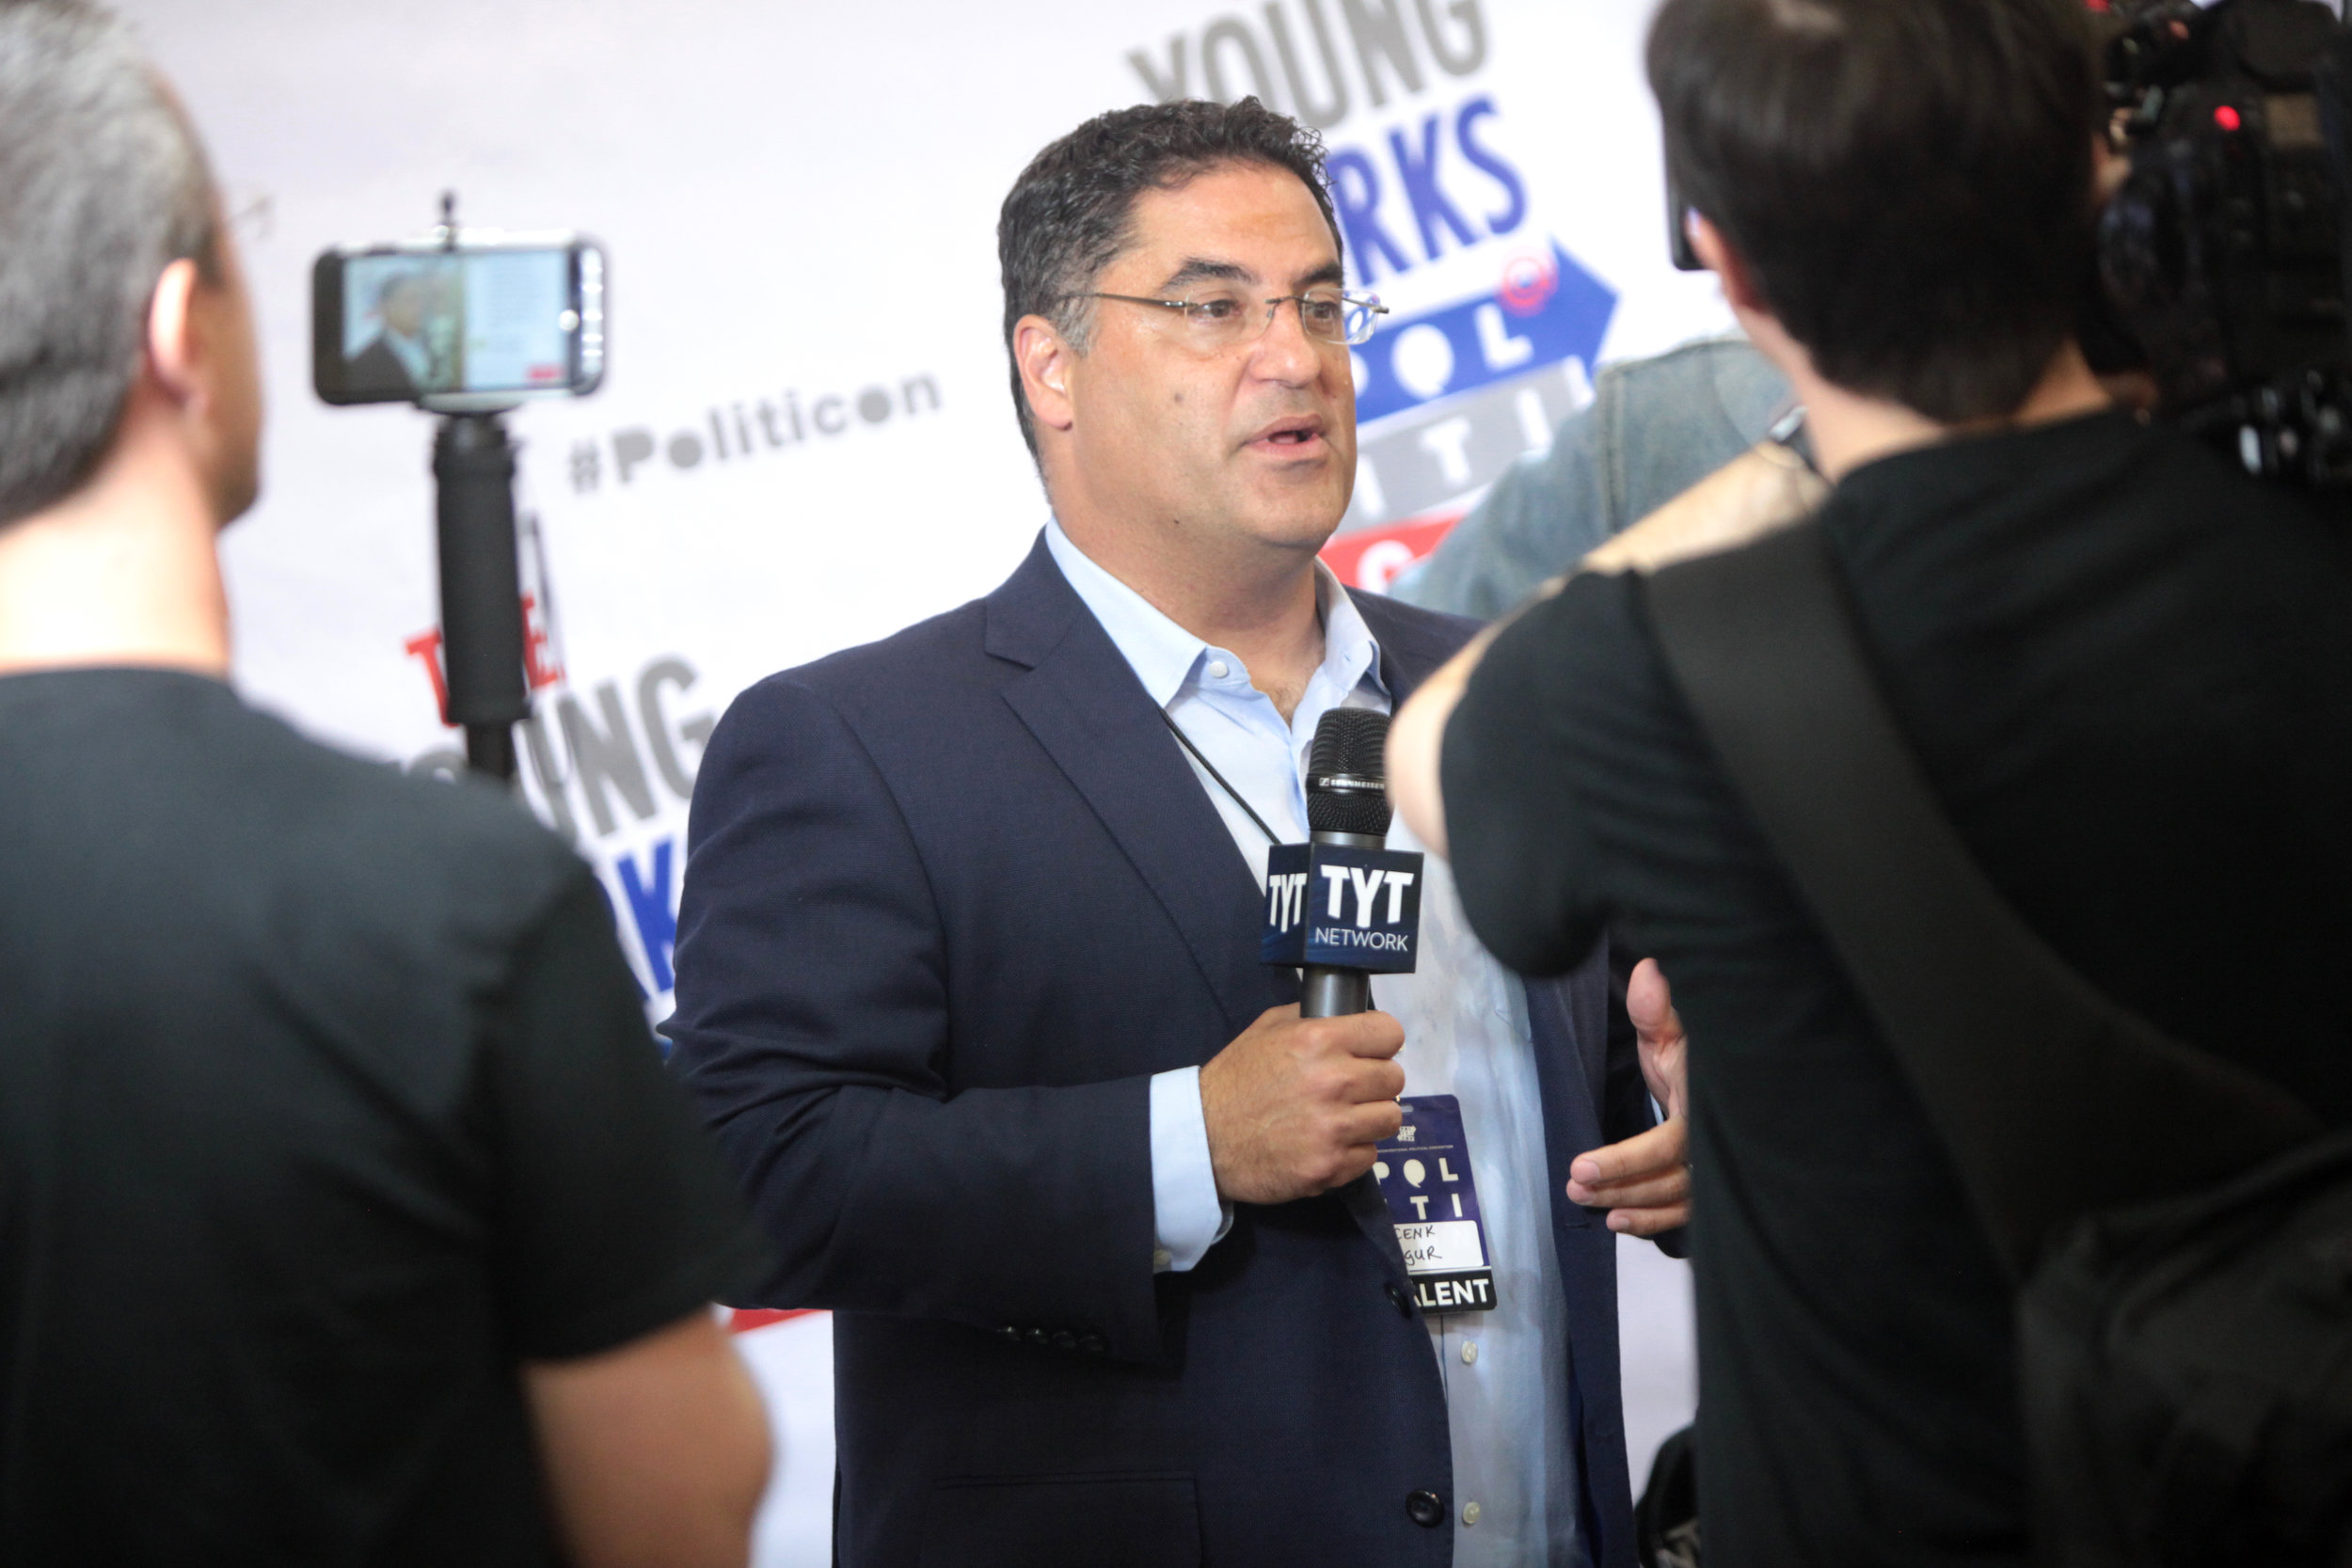 Cenk Uygur speaking at the 2016 Politicon at the Pasadena Convention Center in Pasadena, California.  Photo by Gage Skidmore